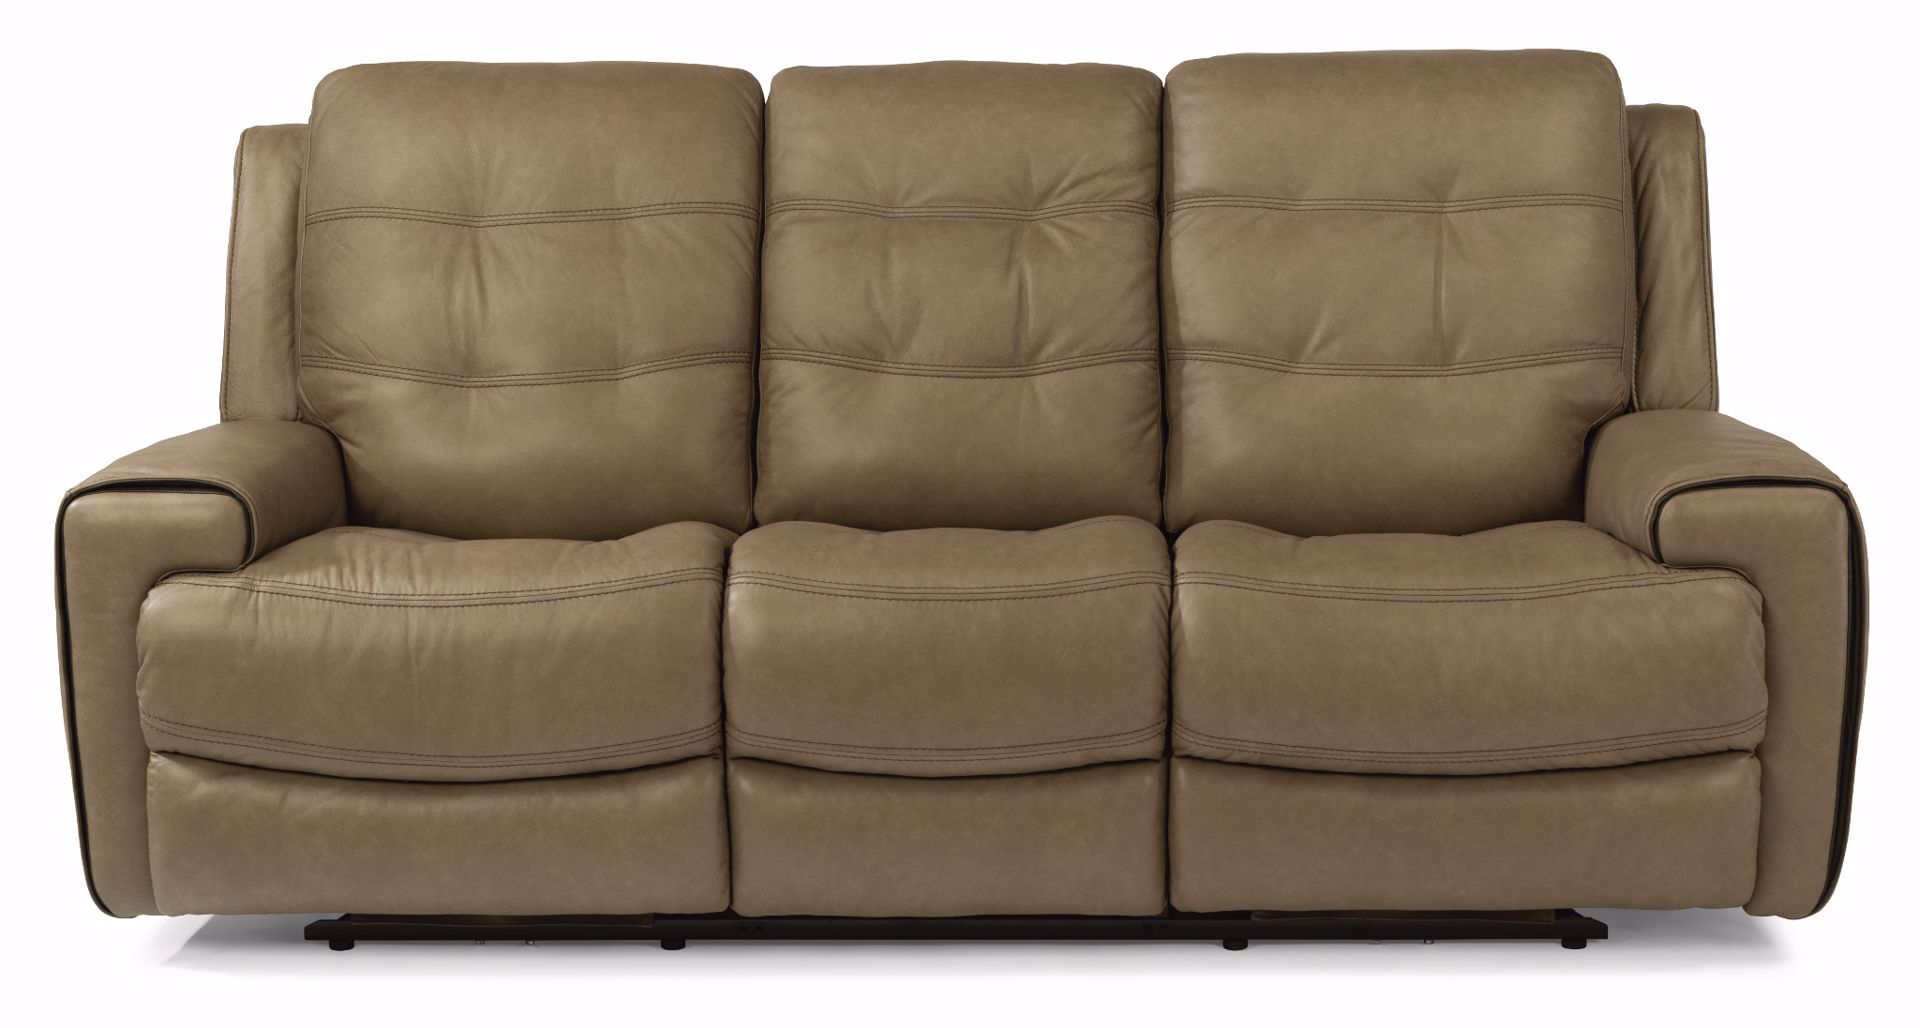 Charleston Power Reclining Sofas For Fashionable Wicklow Power Reclining Leather Sofa With Power Headrest (View 16 of 20)